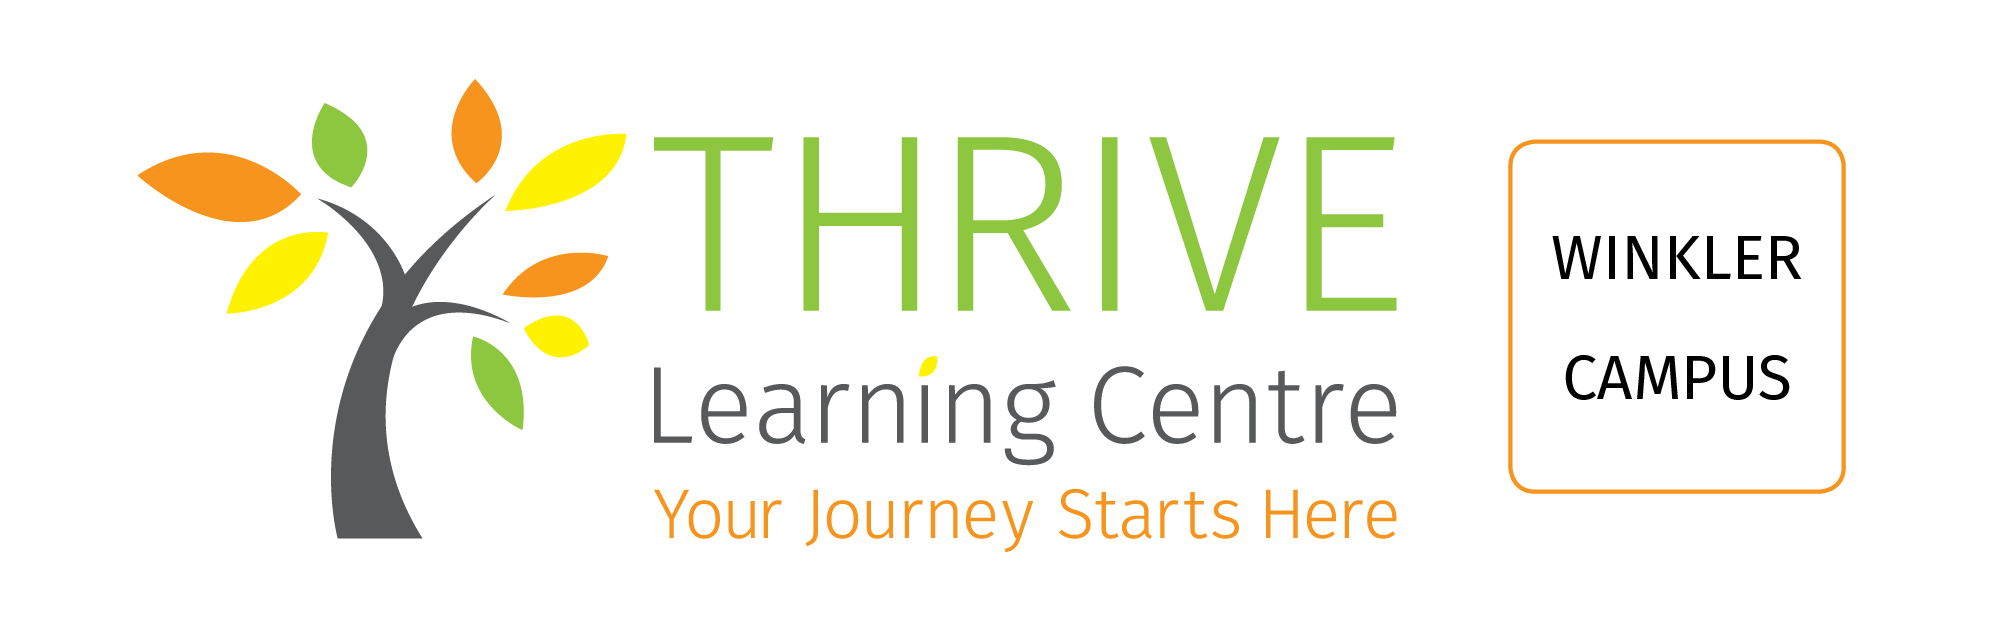 Thrive Learning Centre Satellite Campus to Open in Winkler!